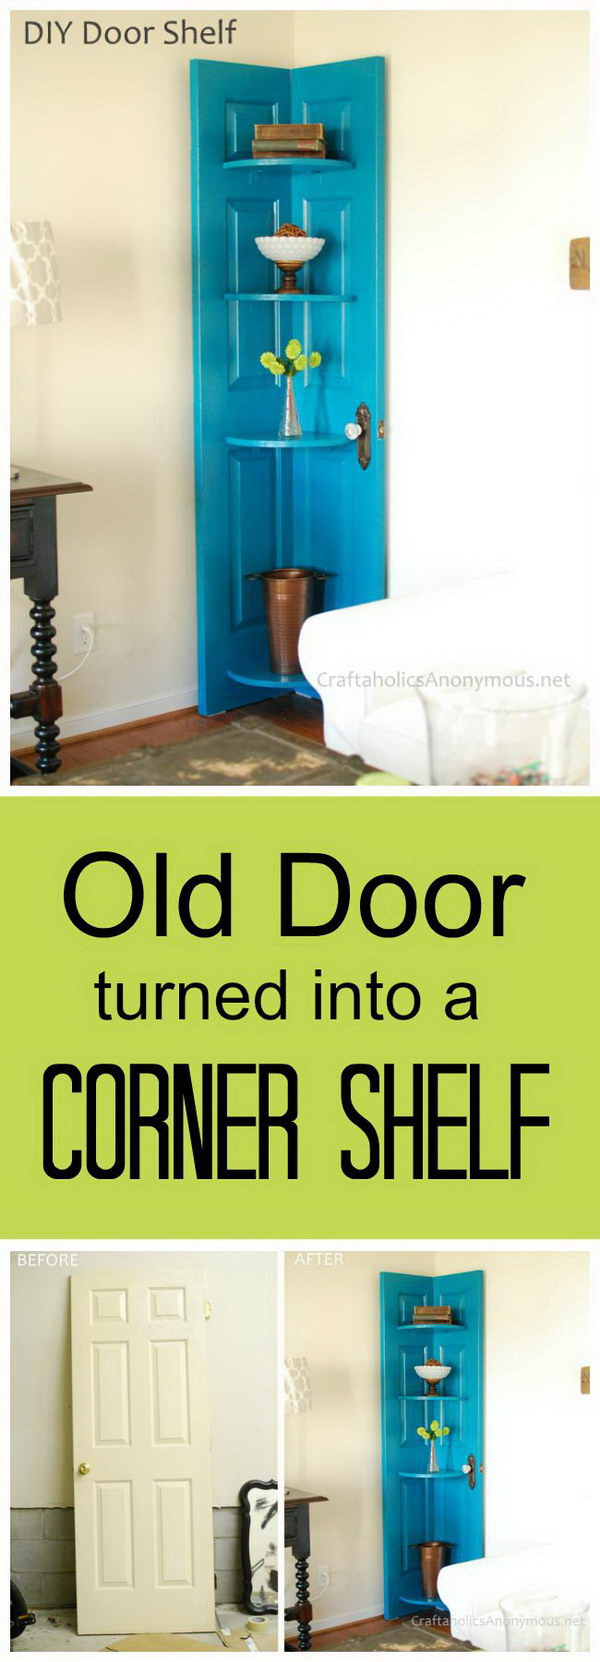 DIY door shelves